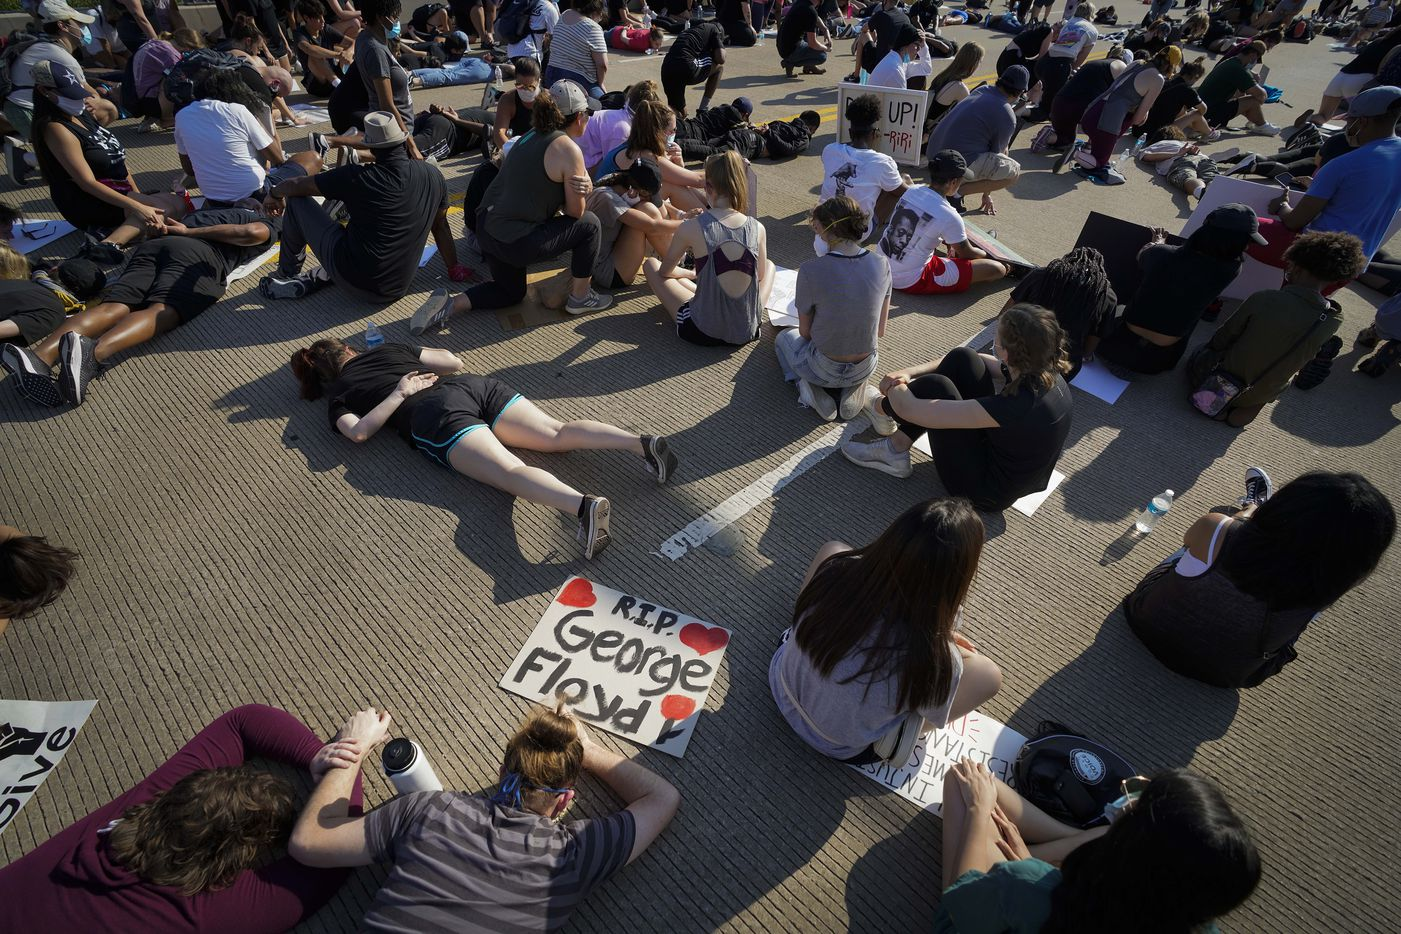 Demonstrators stop a march on the Arapaho Road bridge crossing Midway Road to kneel or lay down on the pavement in silence for 8 minutes and 46 seconds during a protest on Thursday, June 4, 2020, in Addison. Protests continued Thursday in the response to the death of George Floyd.